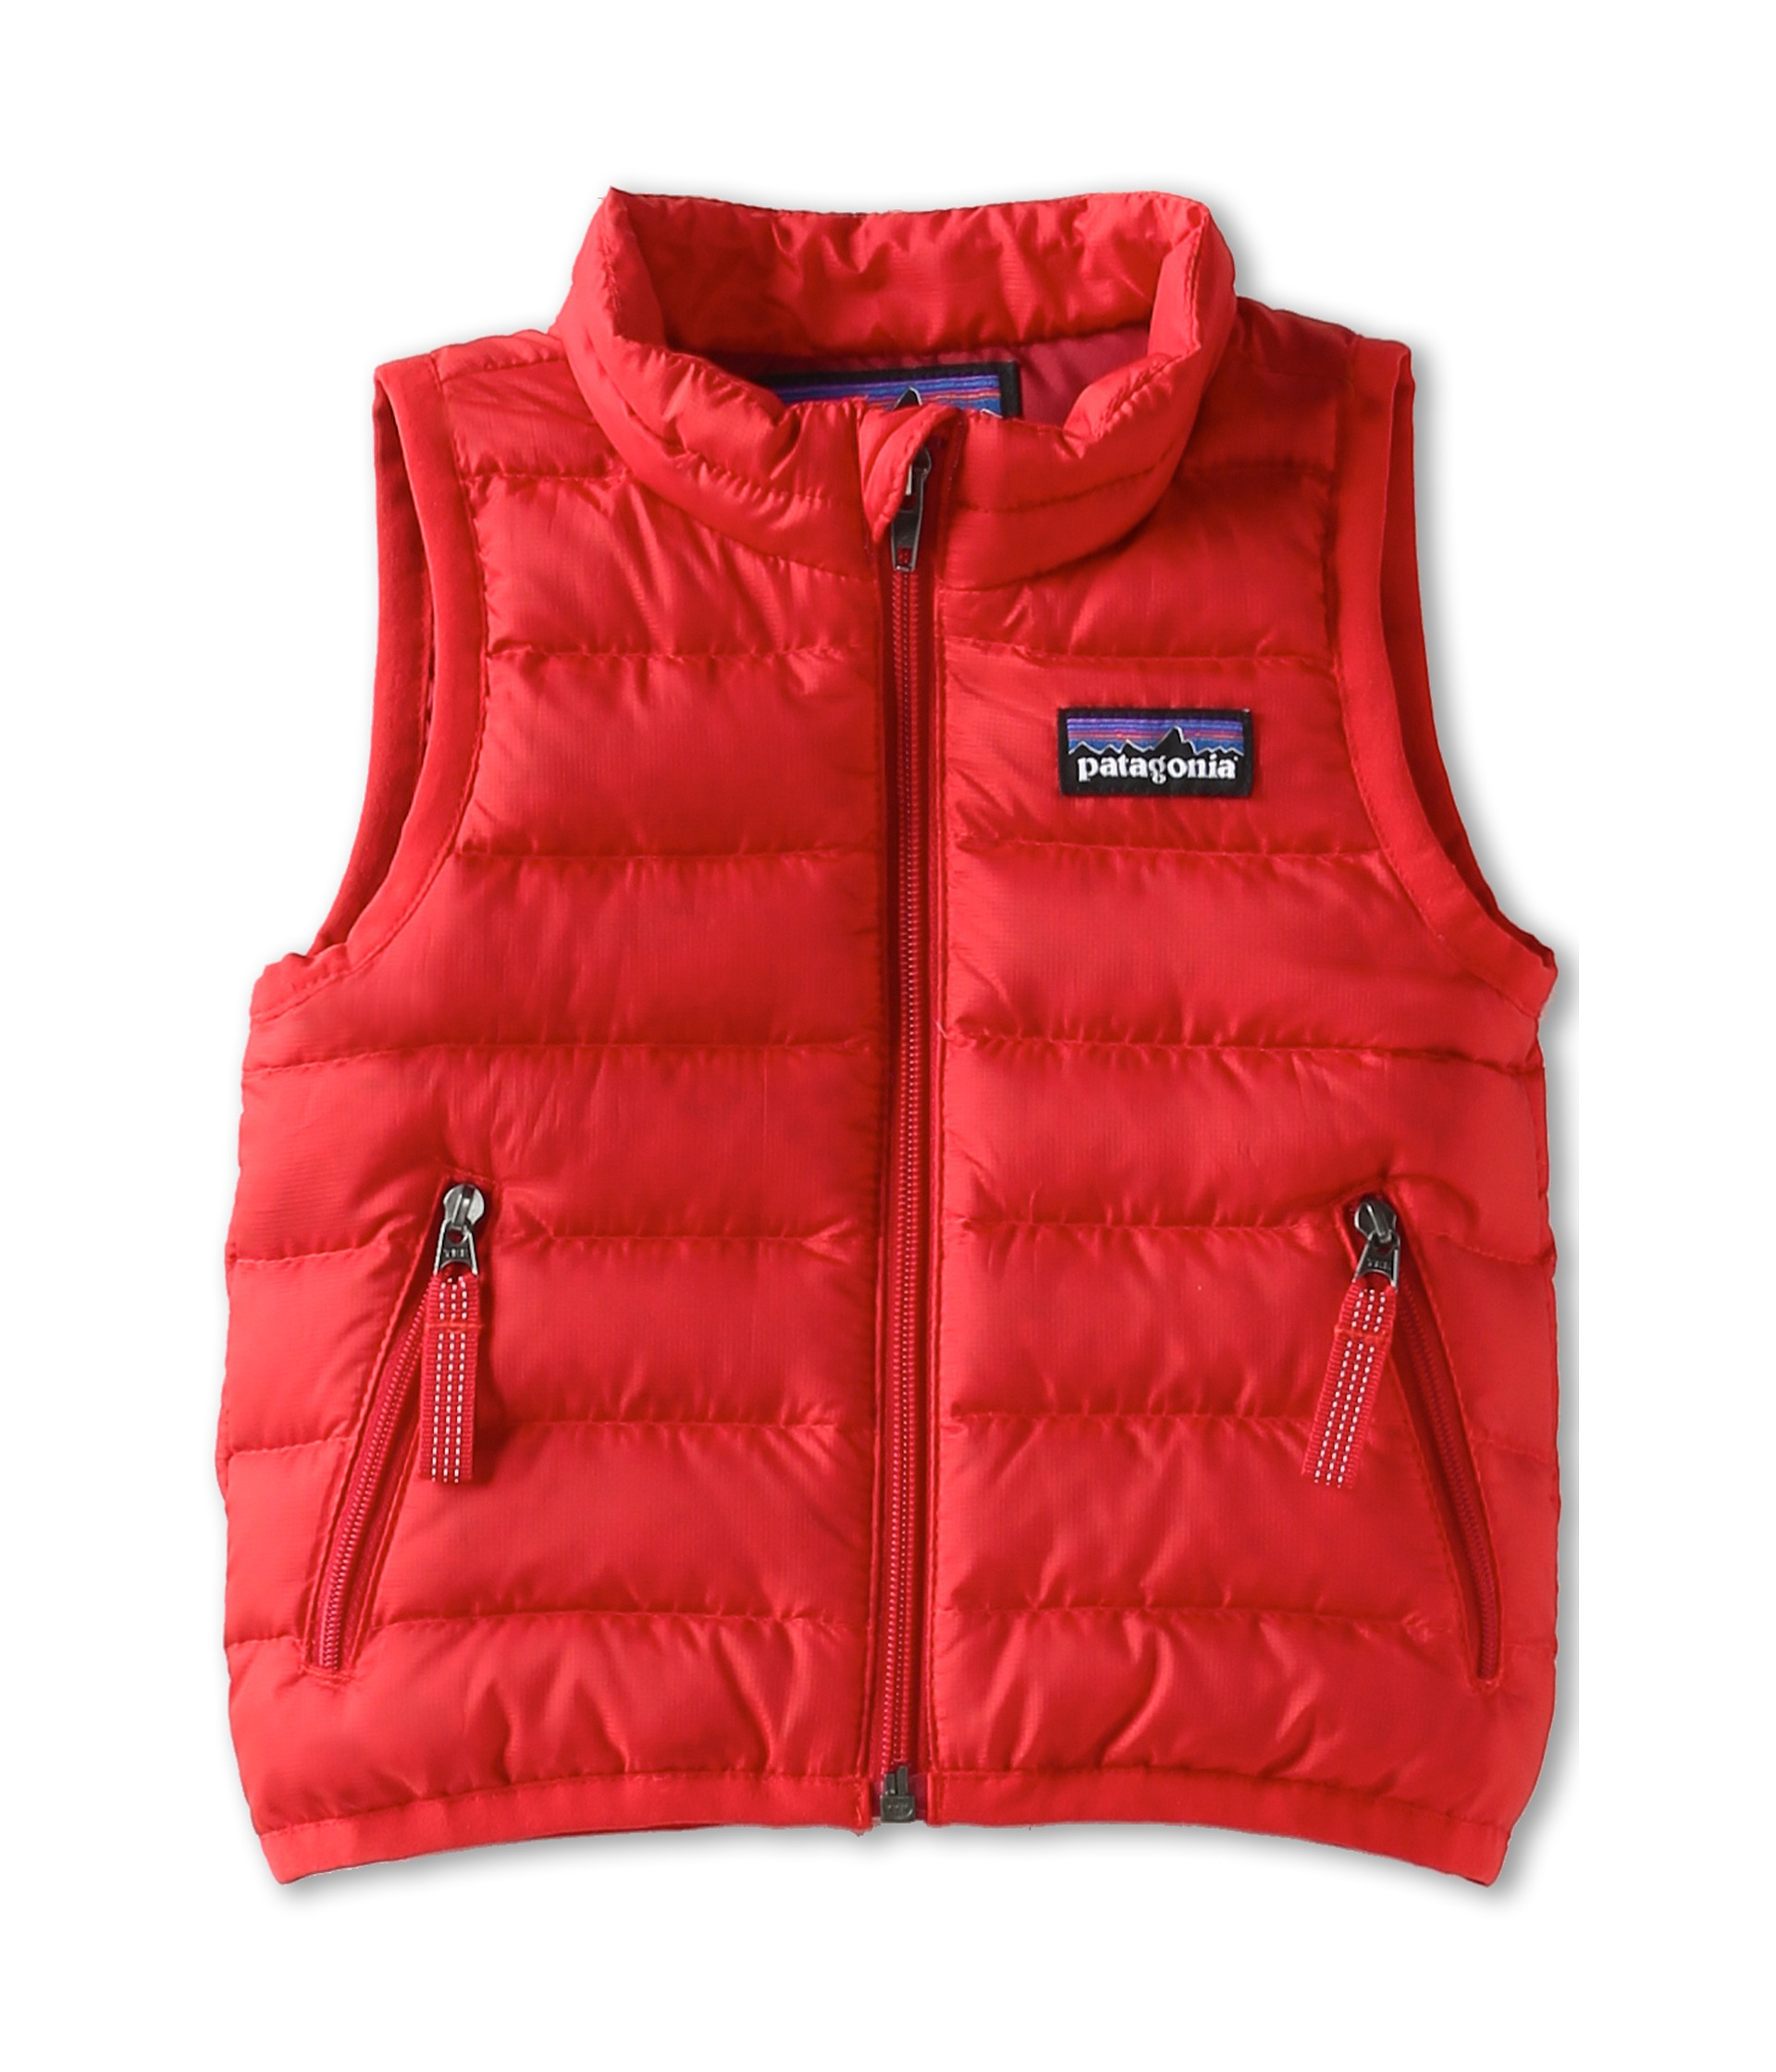 Motteecity Brand New Boys Vest, Please check the size height for Amazon's Choice for